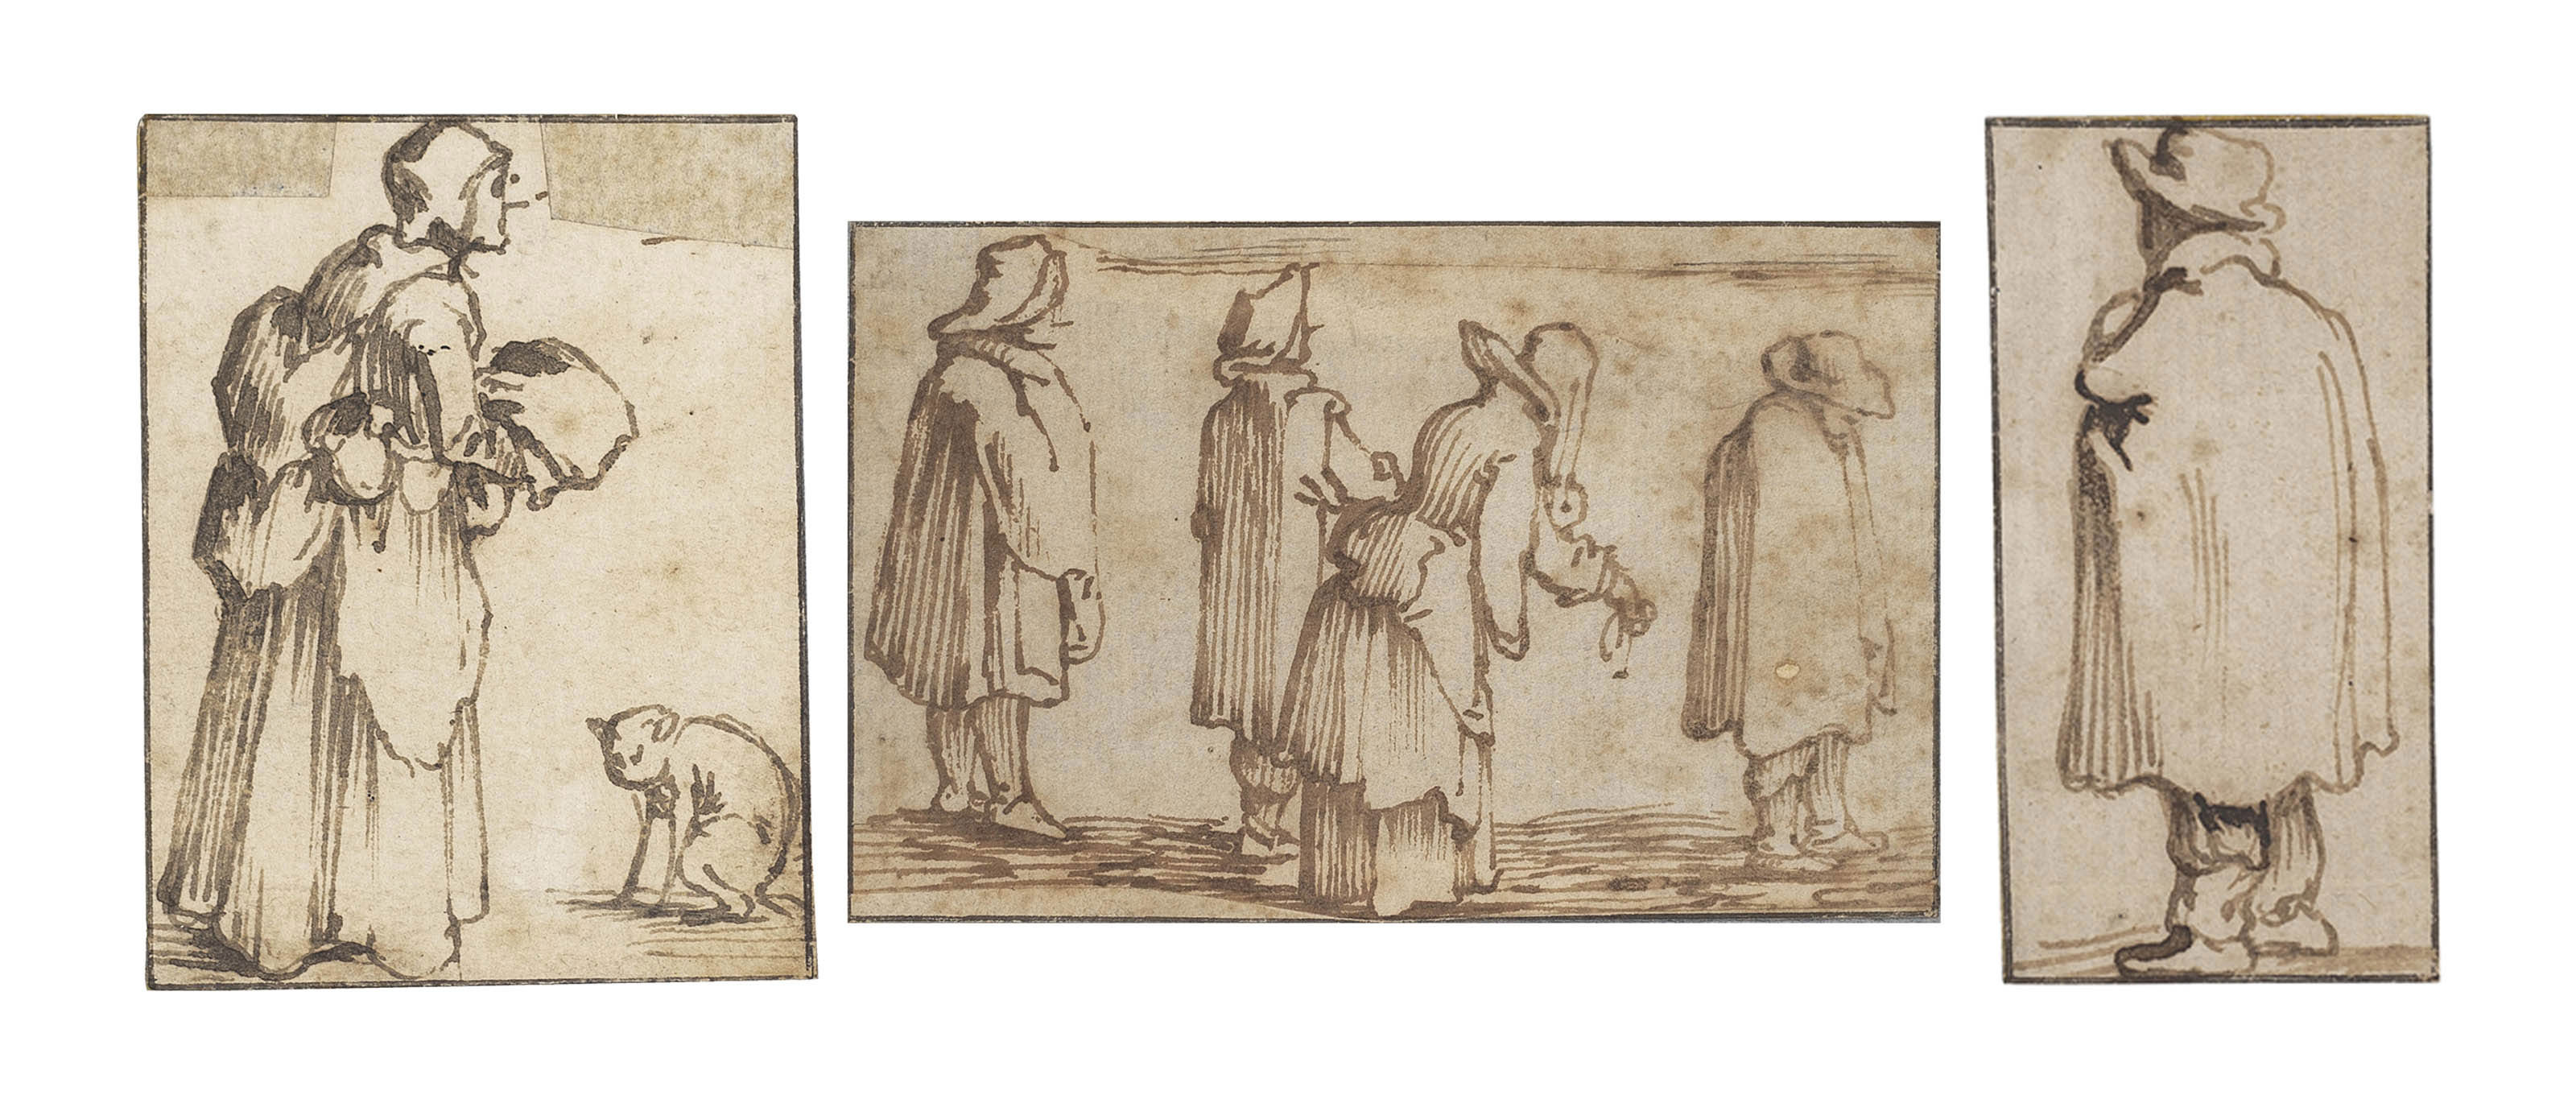 Five sheets of figure studies, two with individual figures, one with a couple, one with a woman and a cat, and one with a group of four figures, all seen in profile or from behind